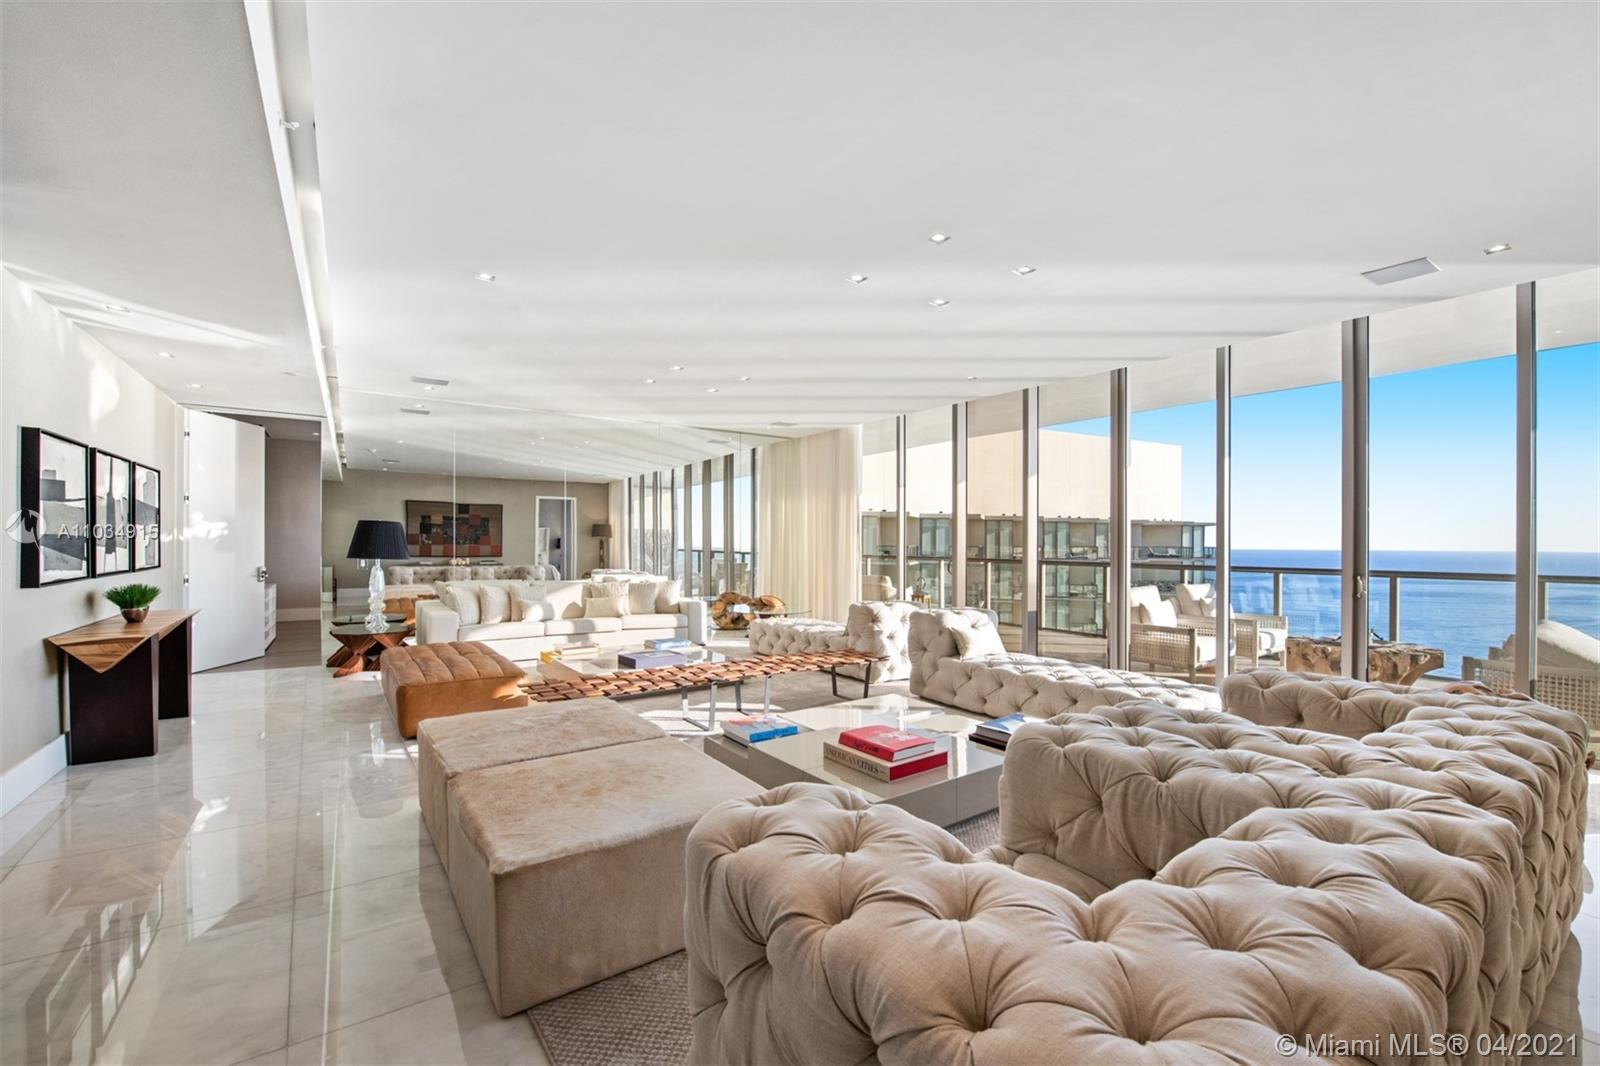 Unique Penthouse Residence avaialbe for lease at the prestigious St Regis. 5 bedrooms and 7 bathrooms .